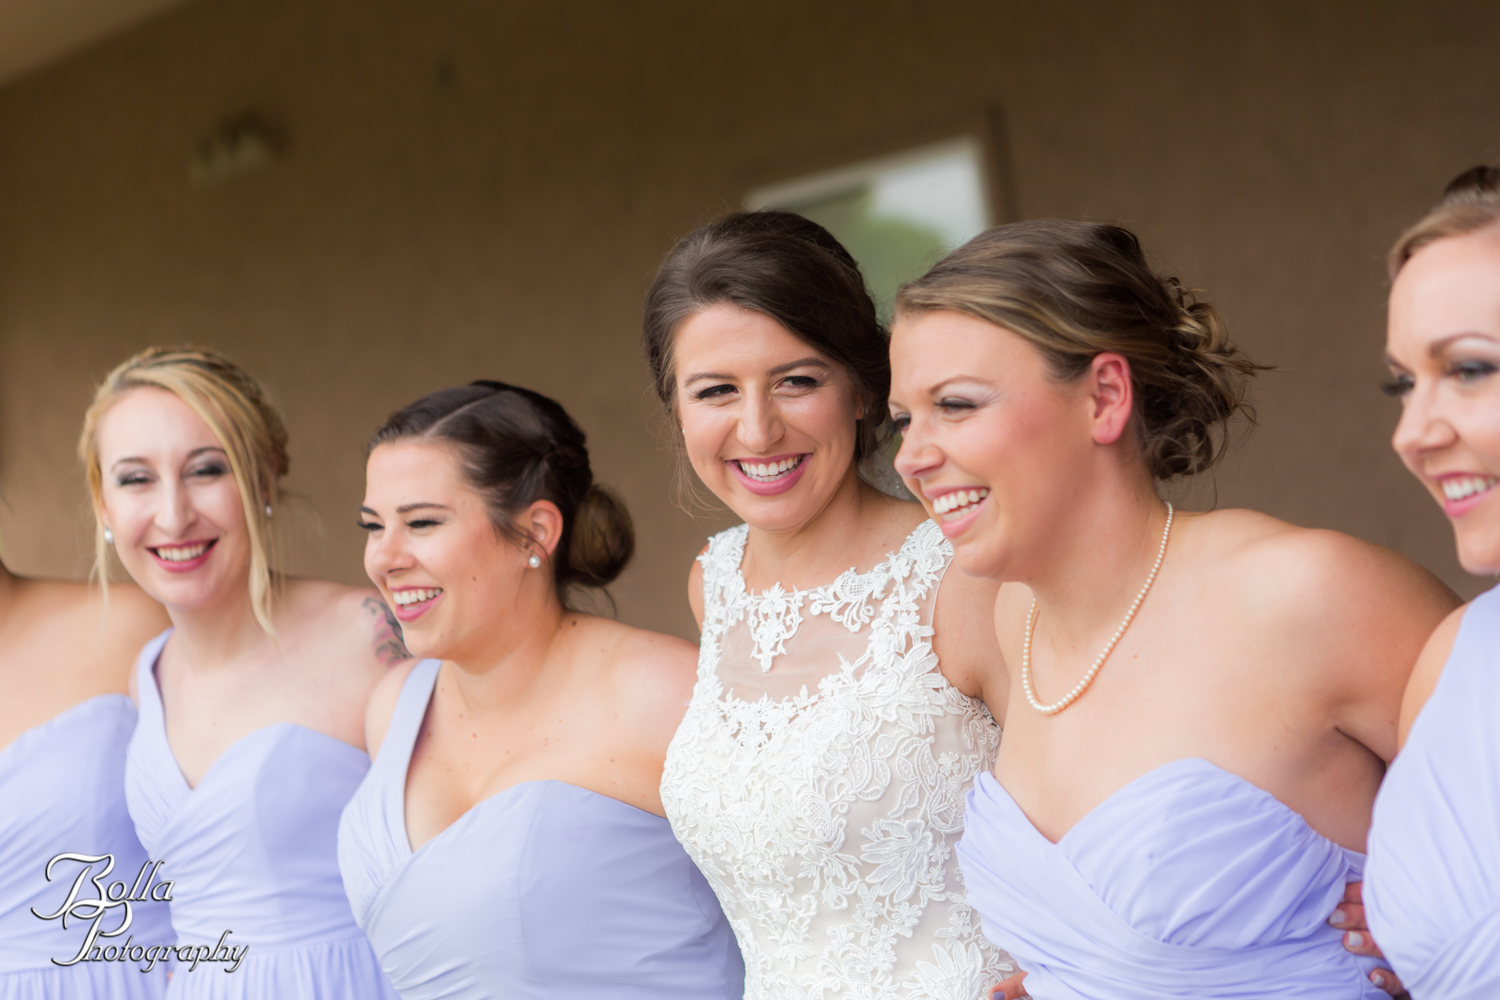 Bolla_Photography_St_Louis_wedding_photographer_Villa_Marie_Winery-0087.jpg